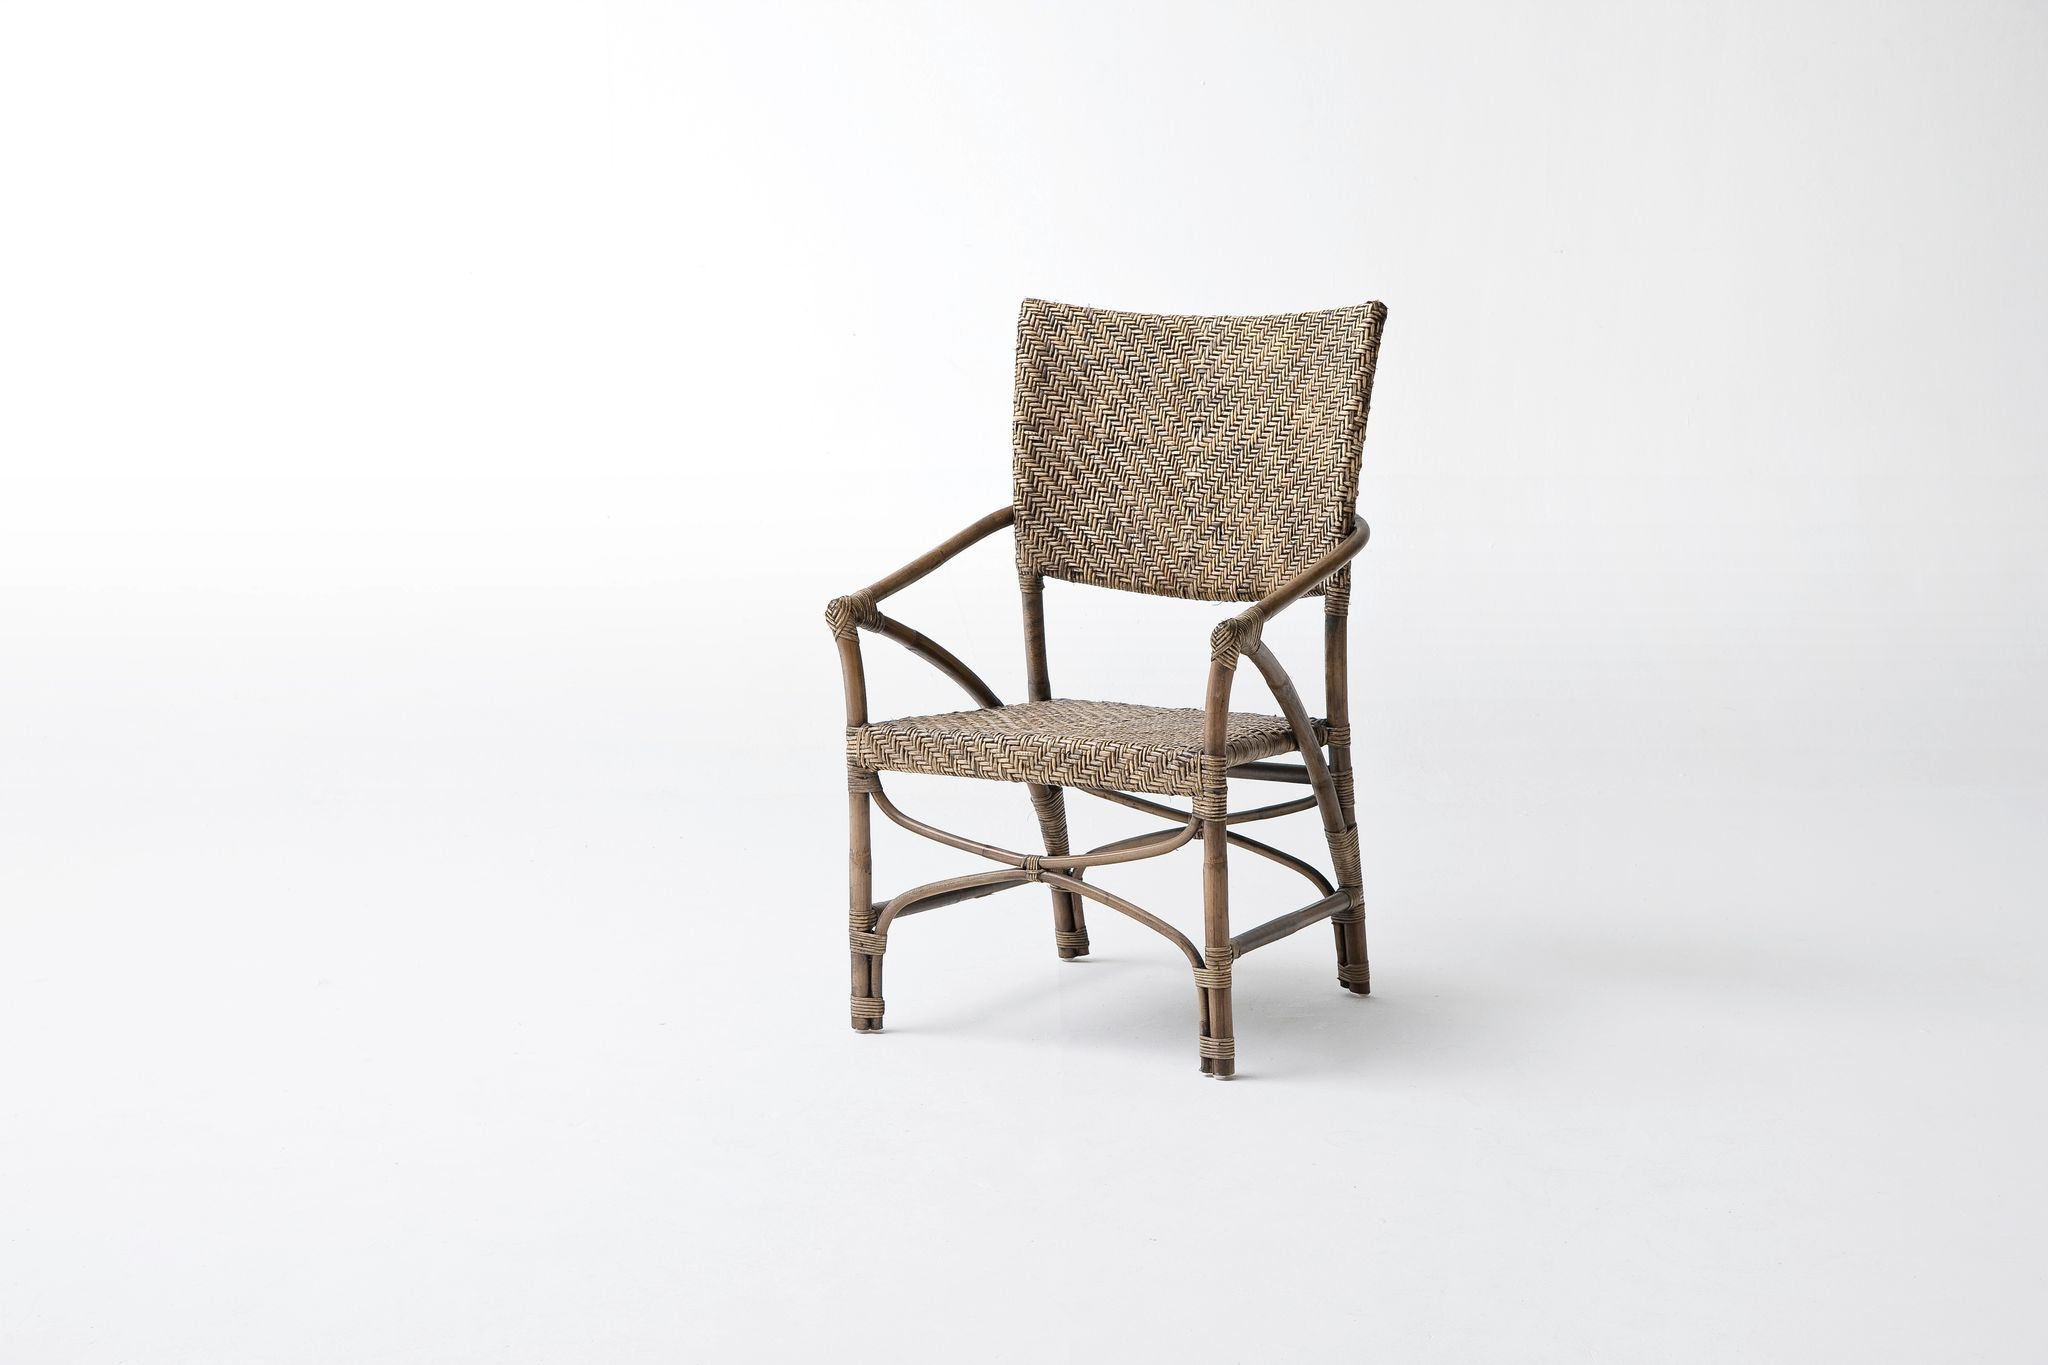 Jester Chair – 2 units in 1 pack